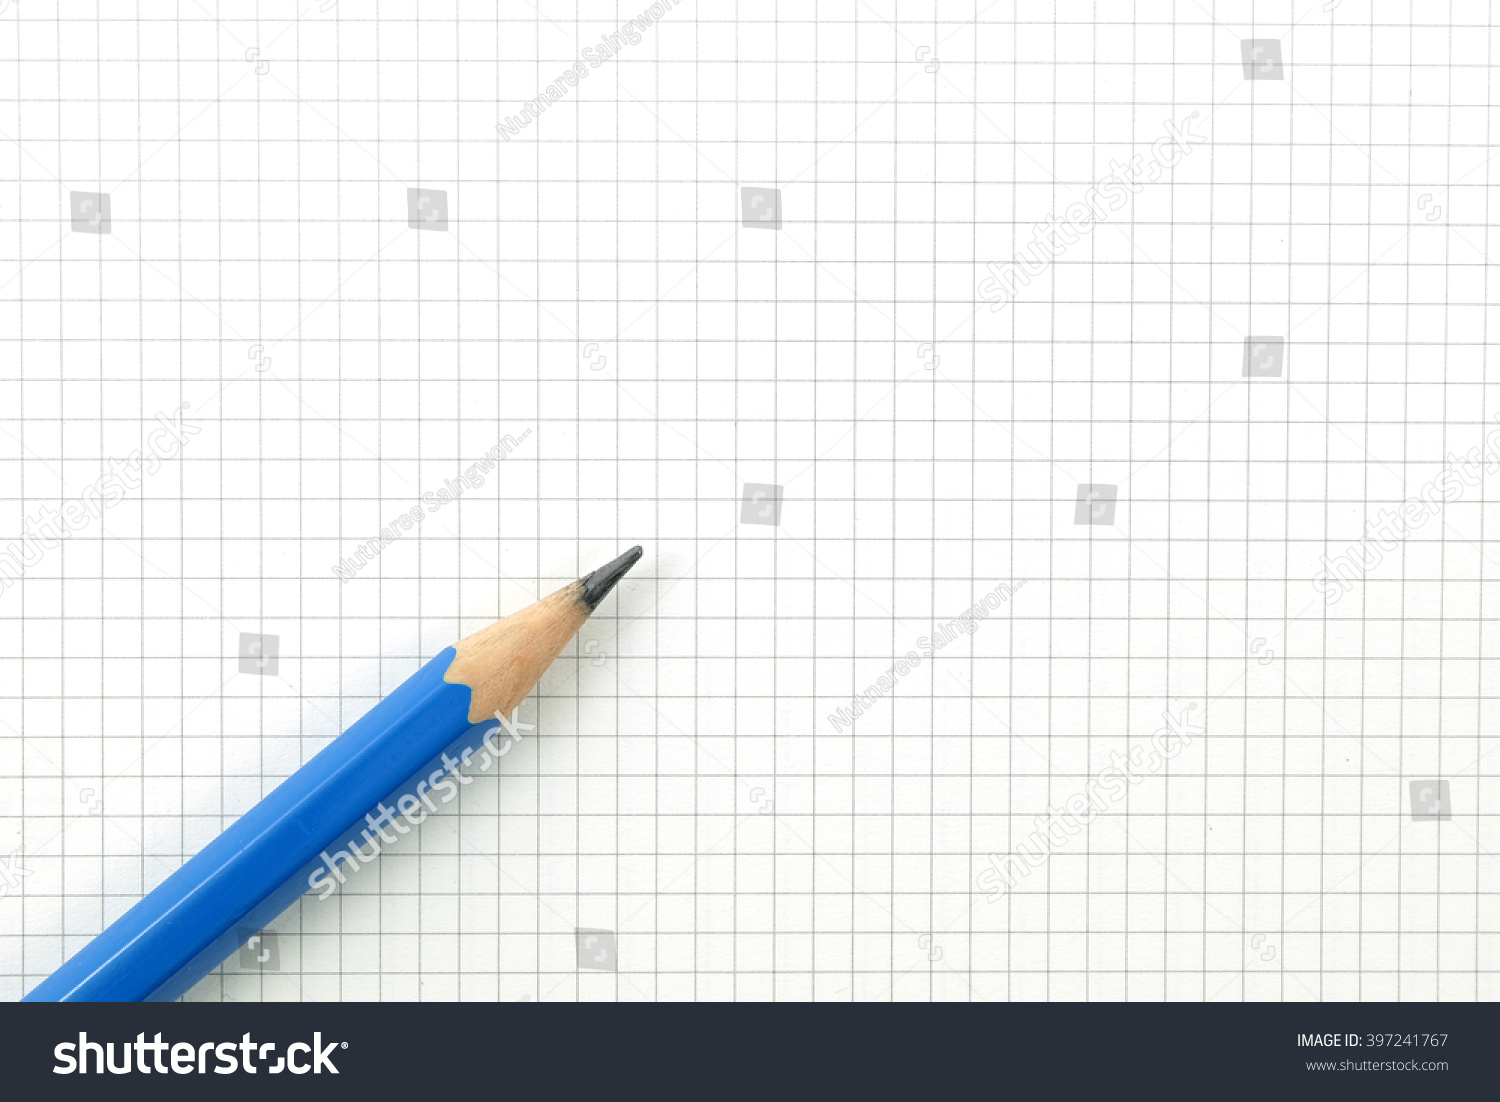 royalty free pencil on drafting paper or graph paper 397241767